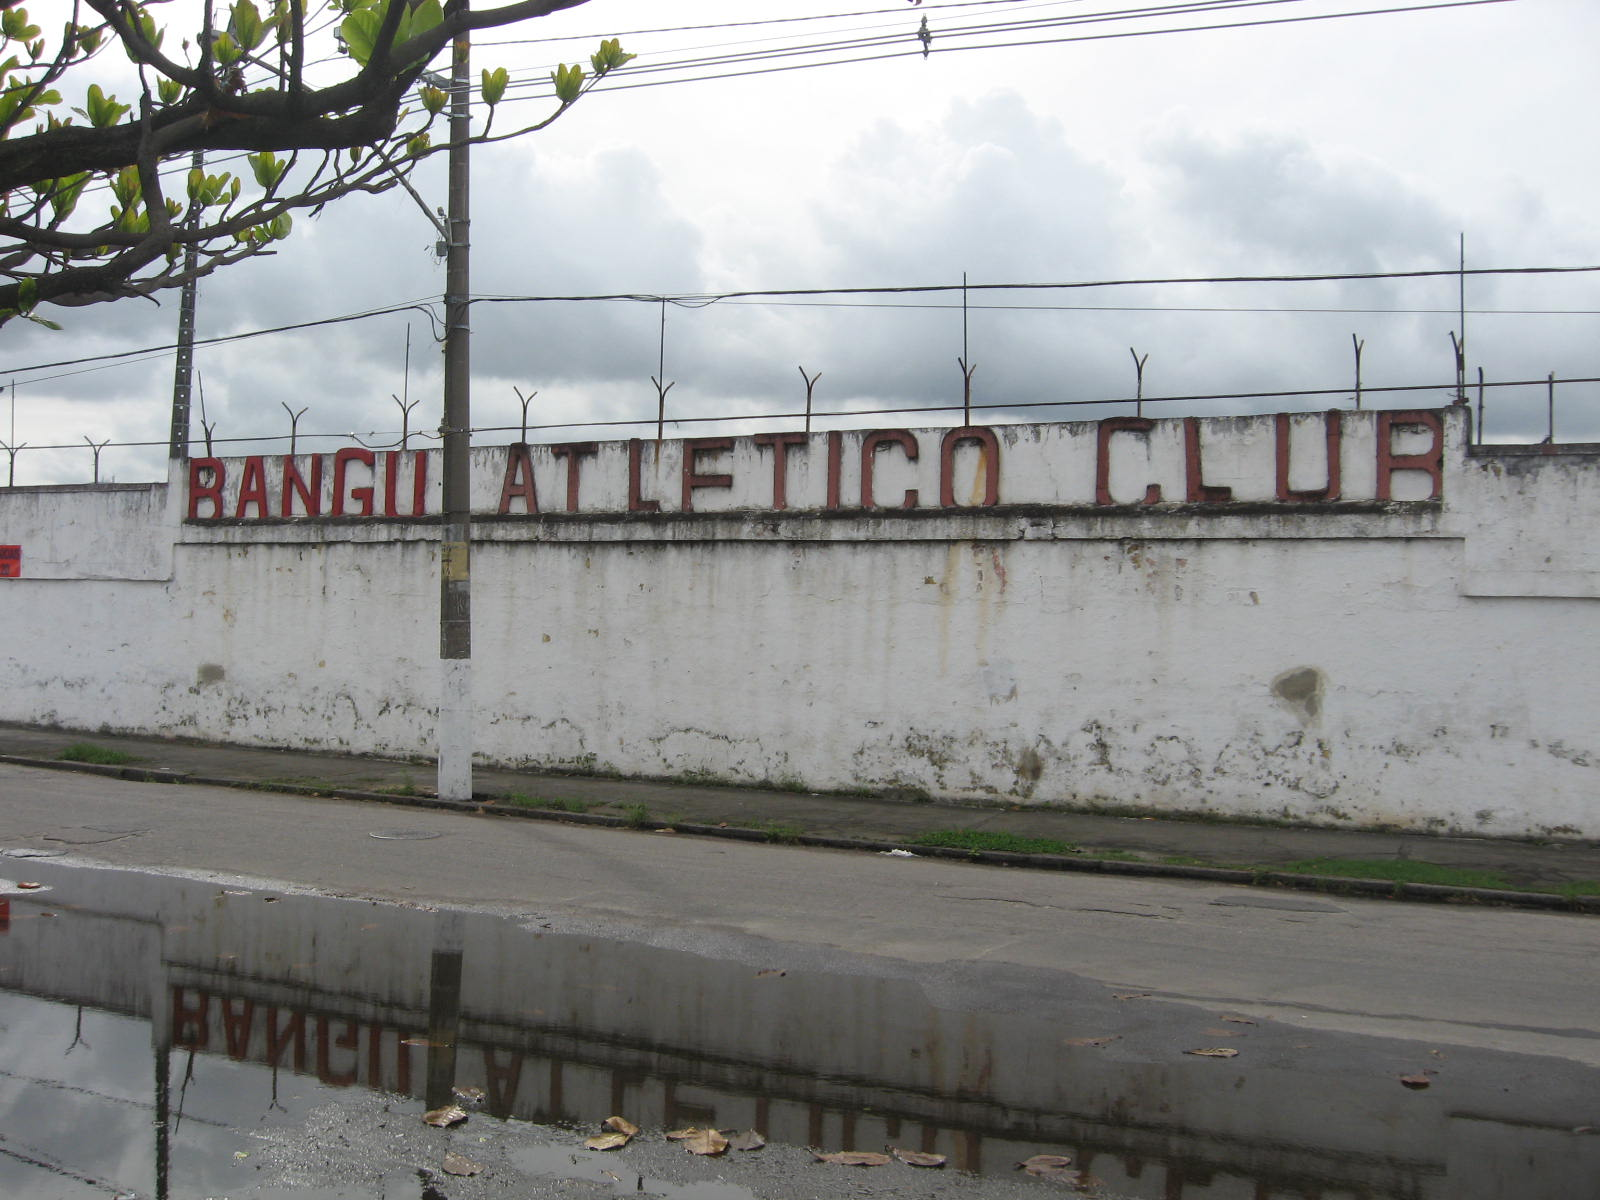 Bangu Atlético Clube became the first football team to field a black player at national competitions in Brazil. A statue of Thomas Donohue stands outside the club